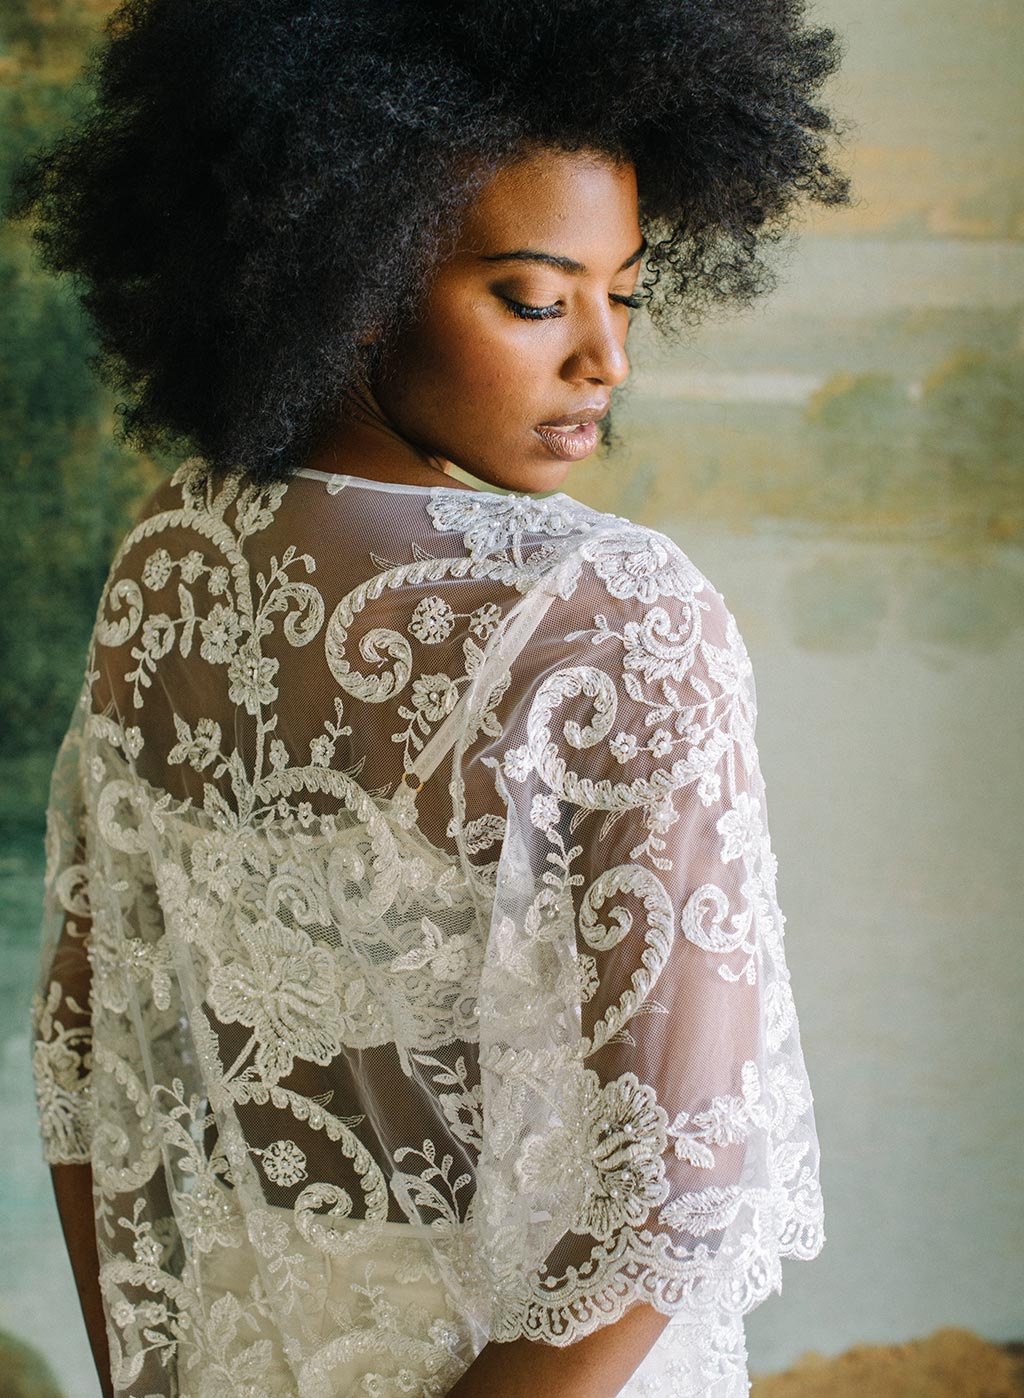 Beaded Lace Tunic Ready to Wear Separates